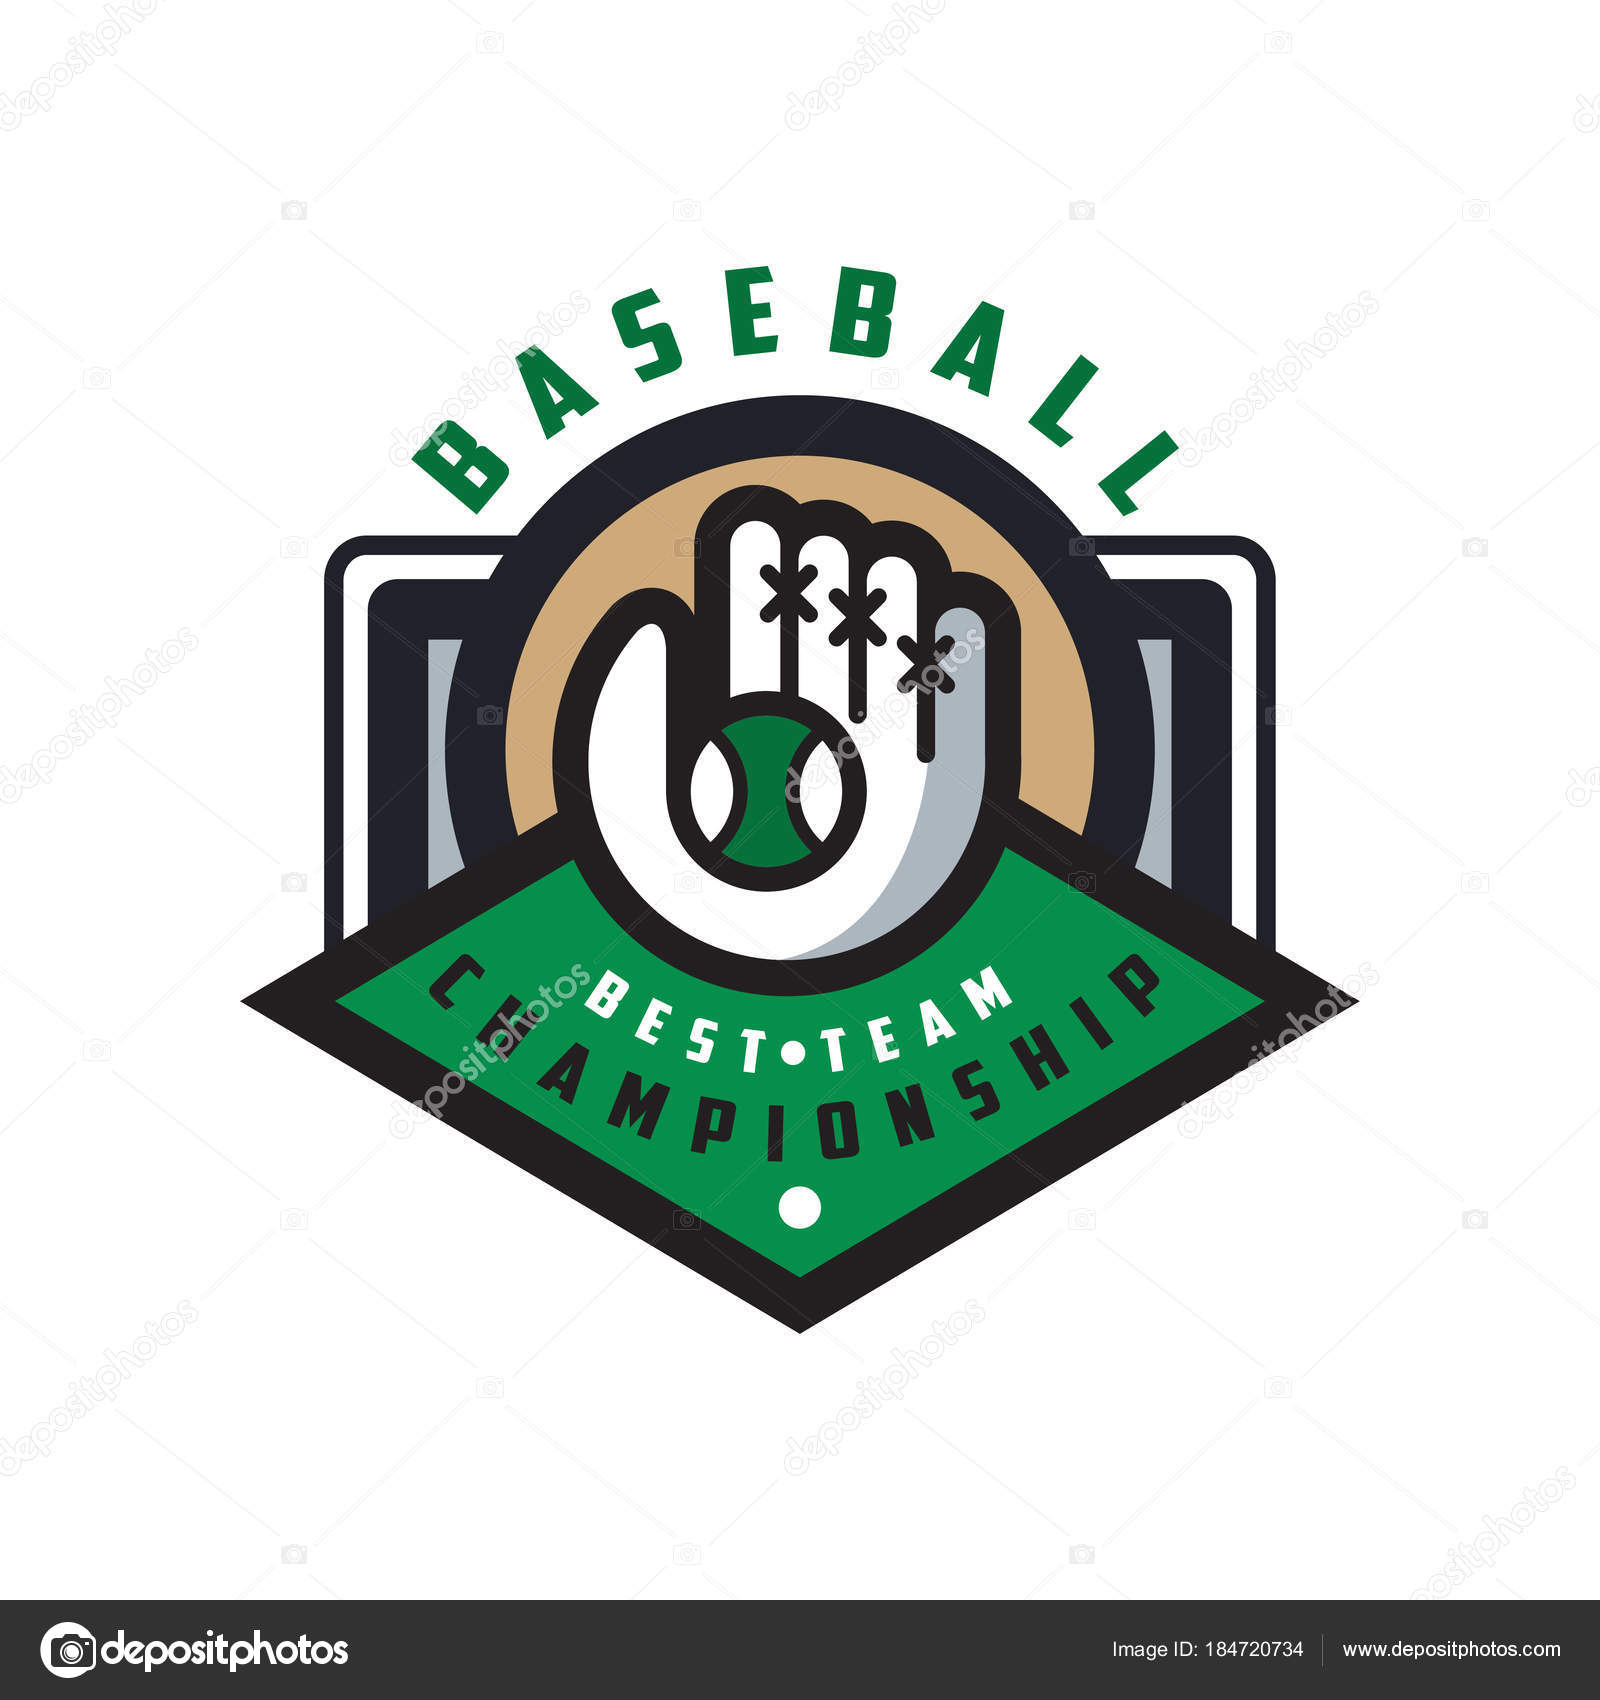 Baseball Championship Best Team Logo Template Design Element For Badge Banner Emblem Label Insignia Vector Illustration Isolated On A White